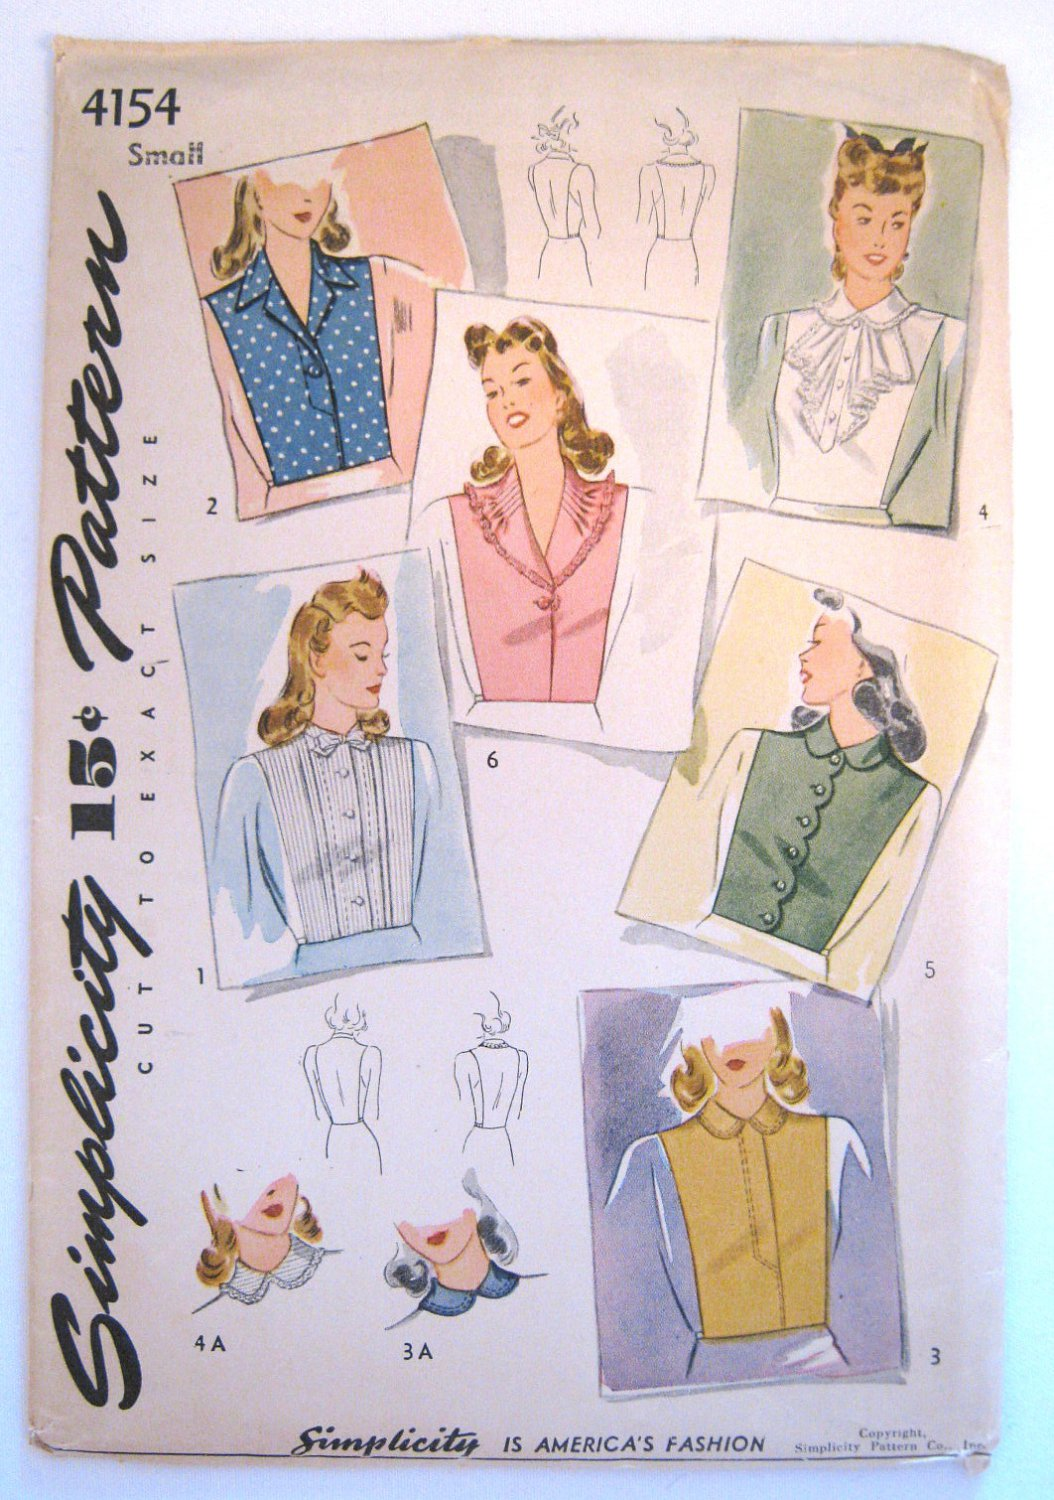 Vintage 1940s Dickey Sewing Pattern Simplicity 4154 Size Small Bust 32 34 Factory Folds